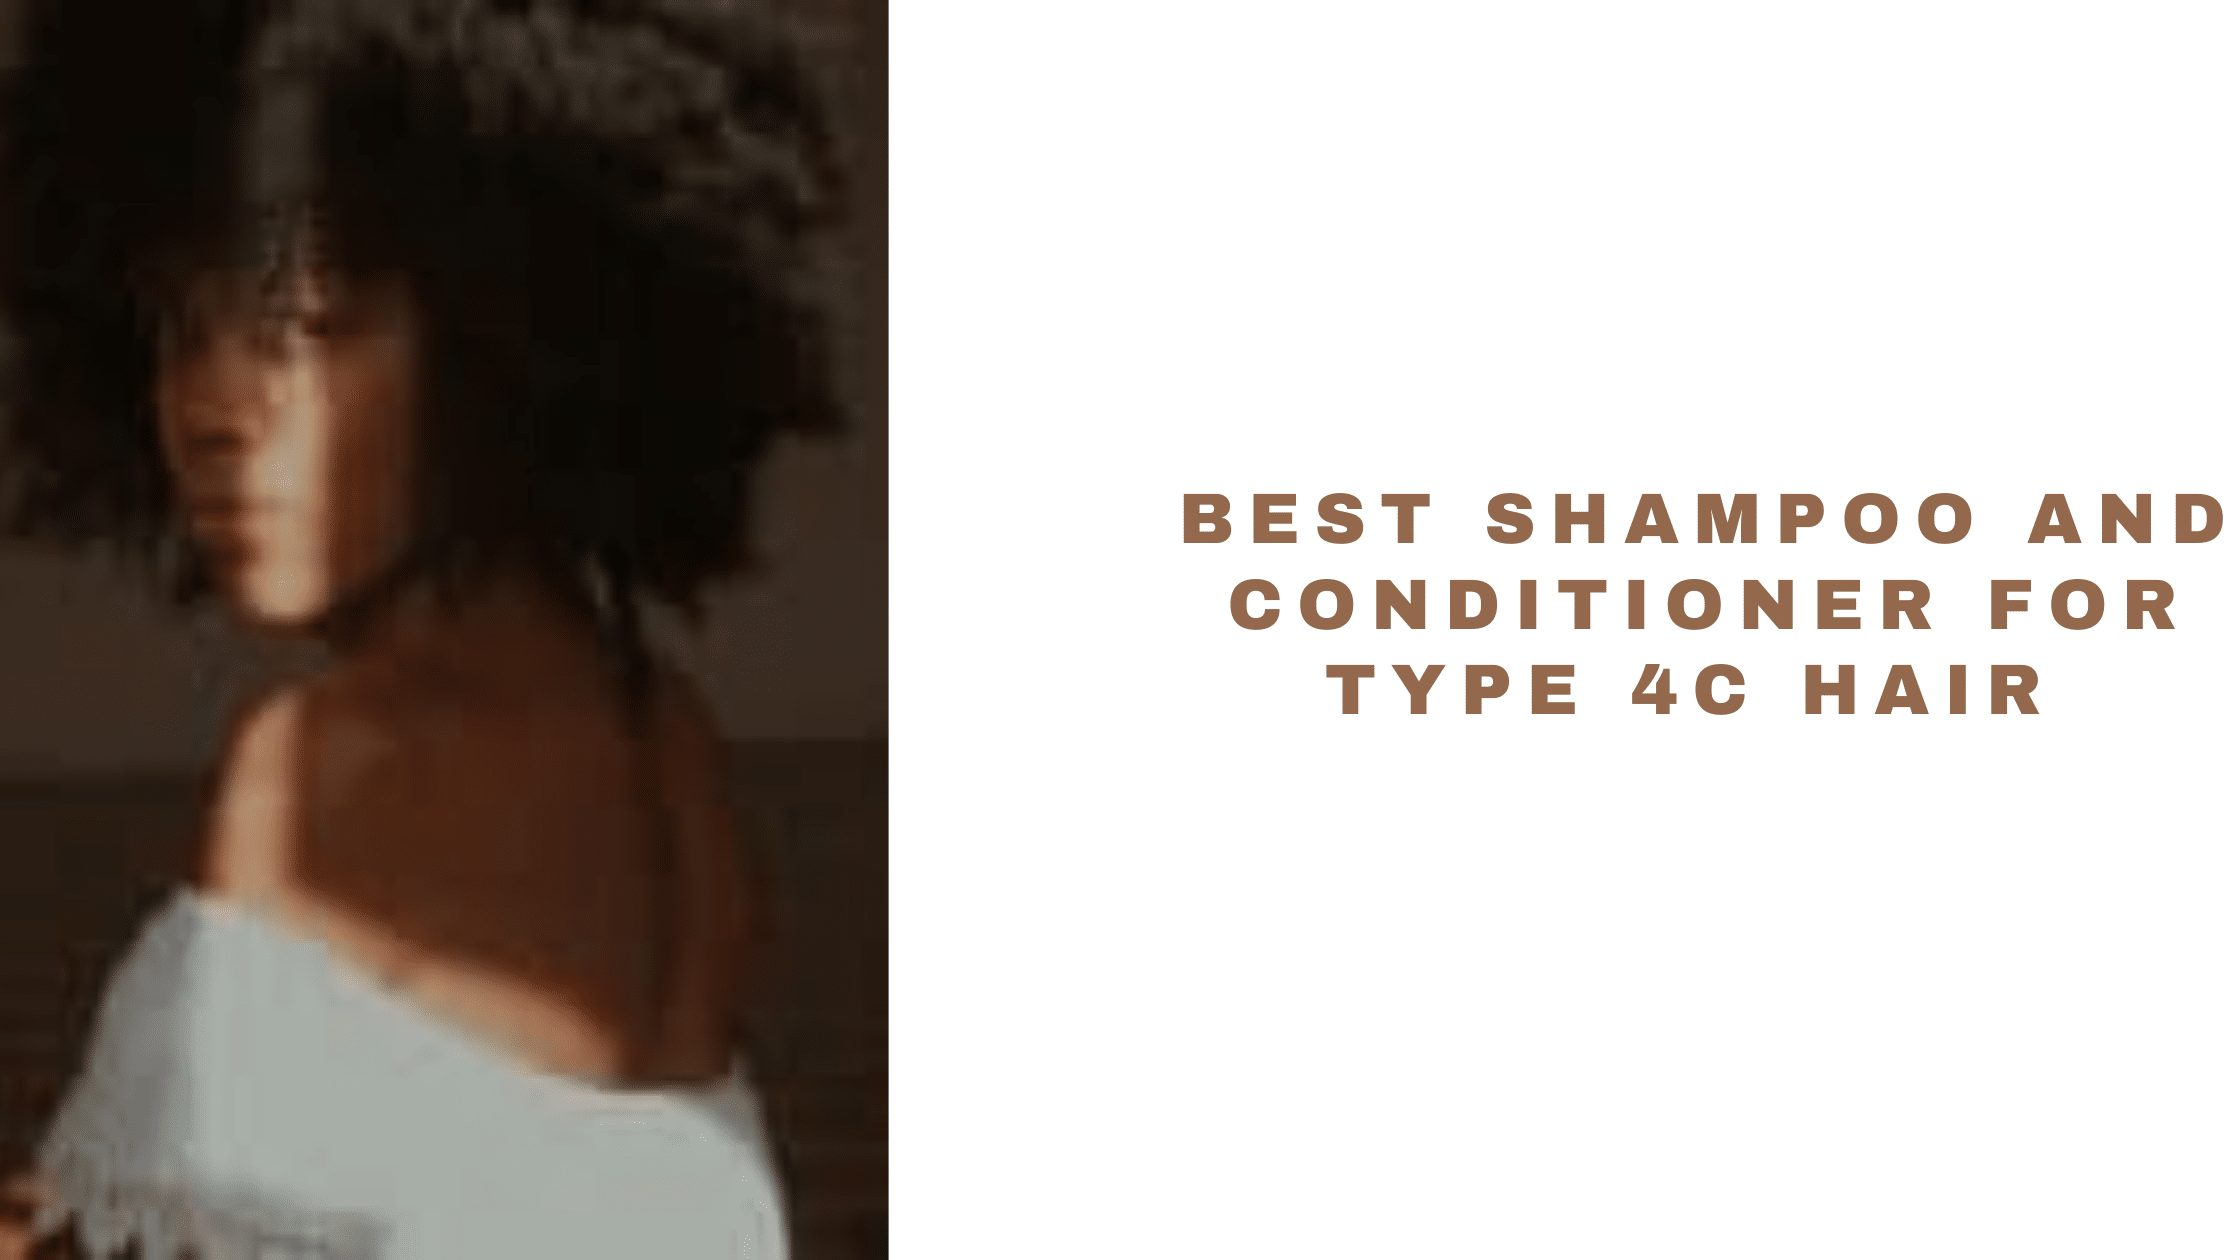 13 Best Shampoo And Conditioner For Type 4C Hair 2021 | Top 4c Hair Products